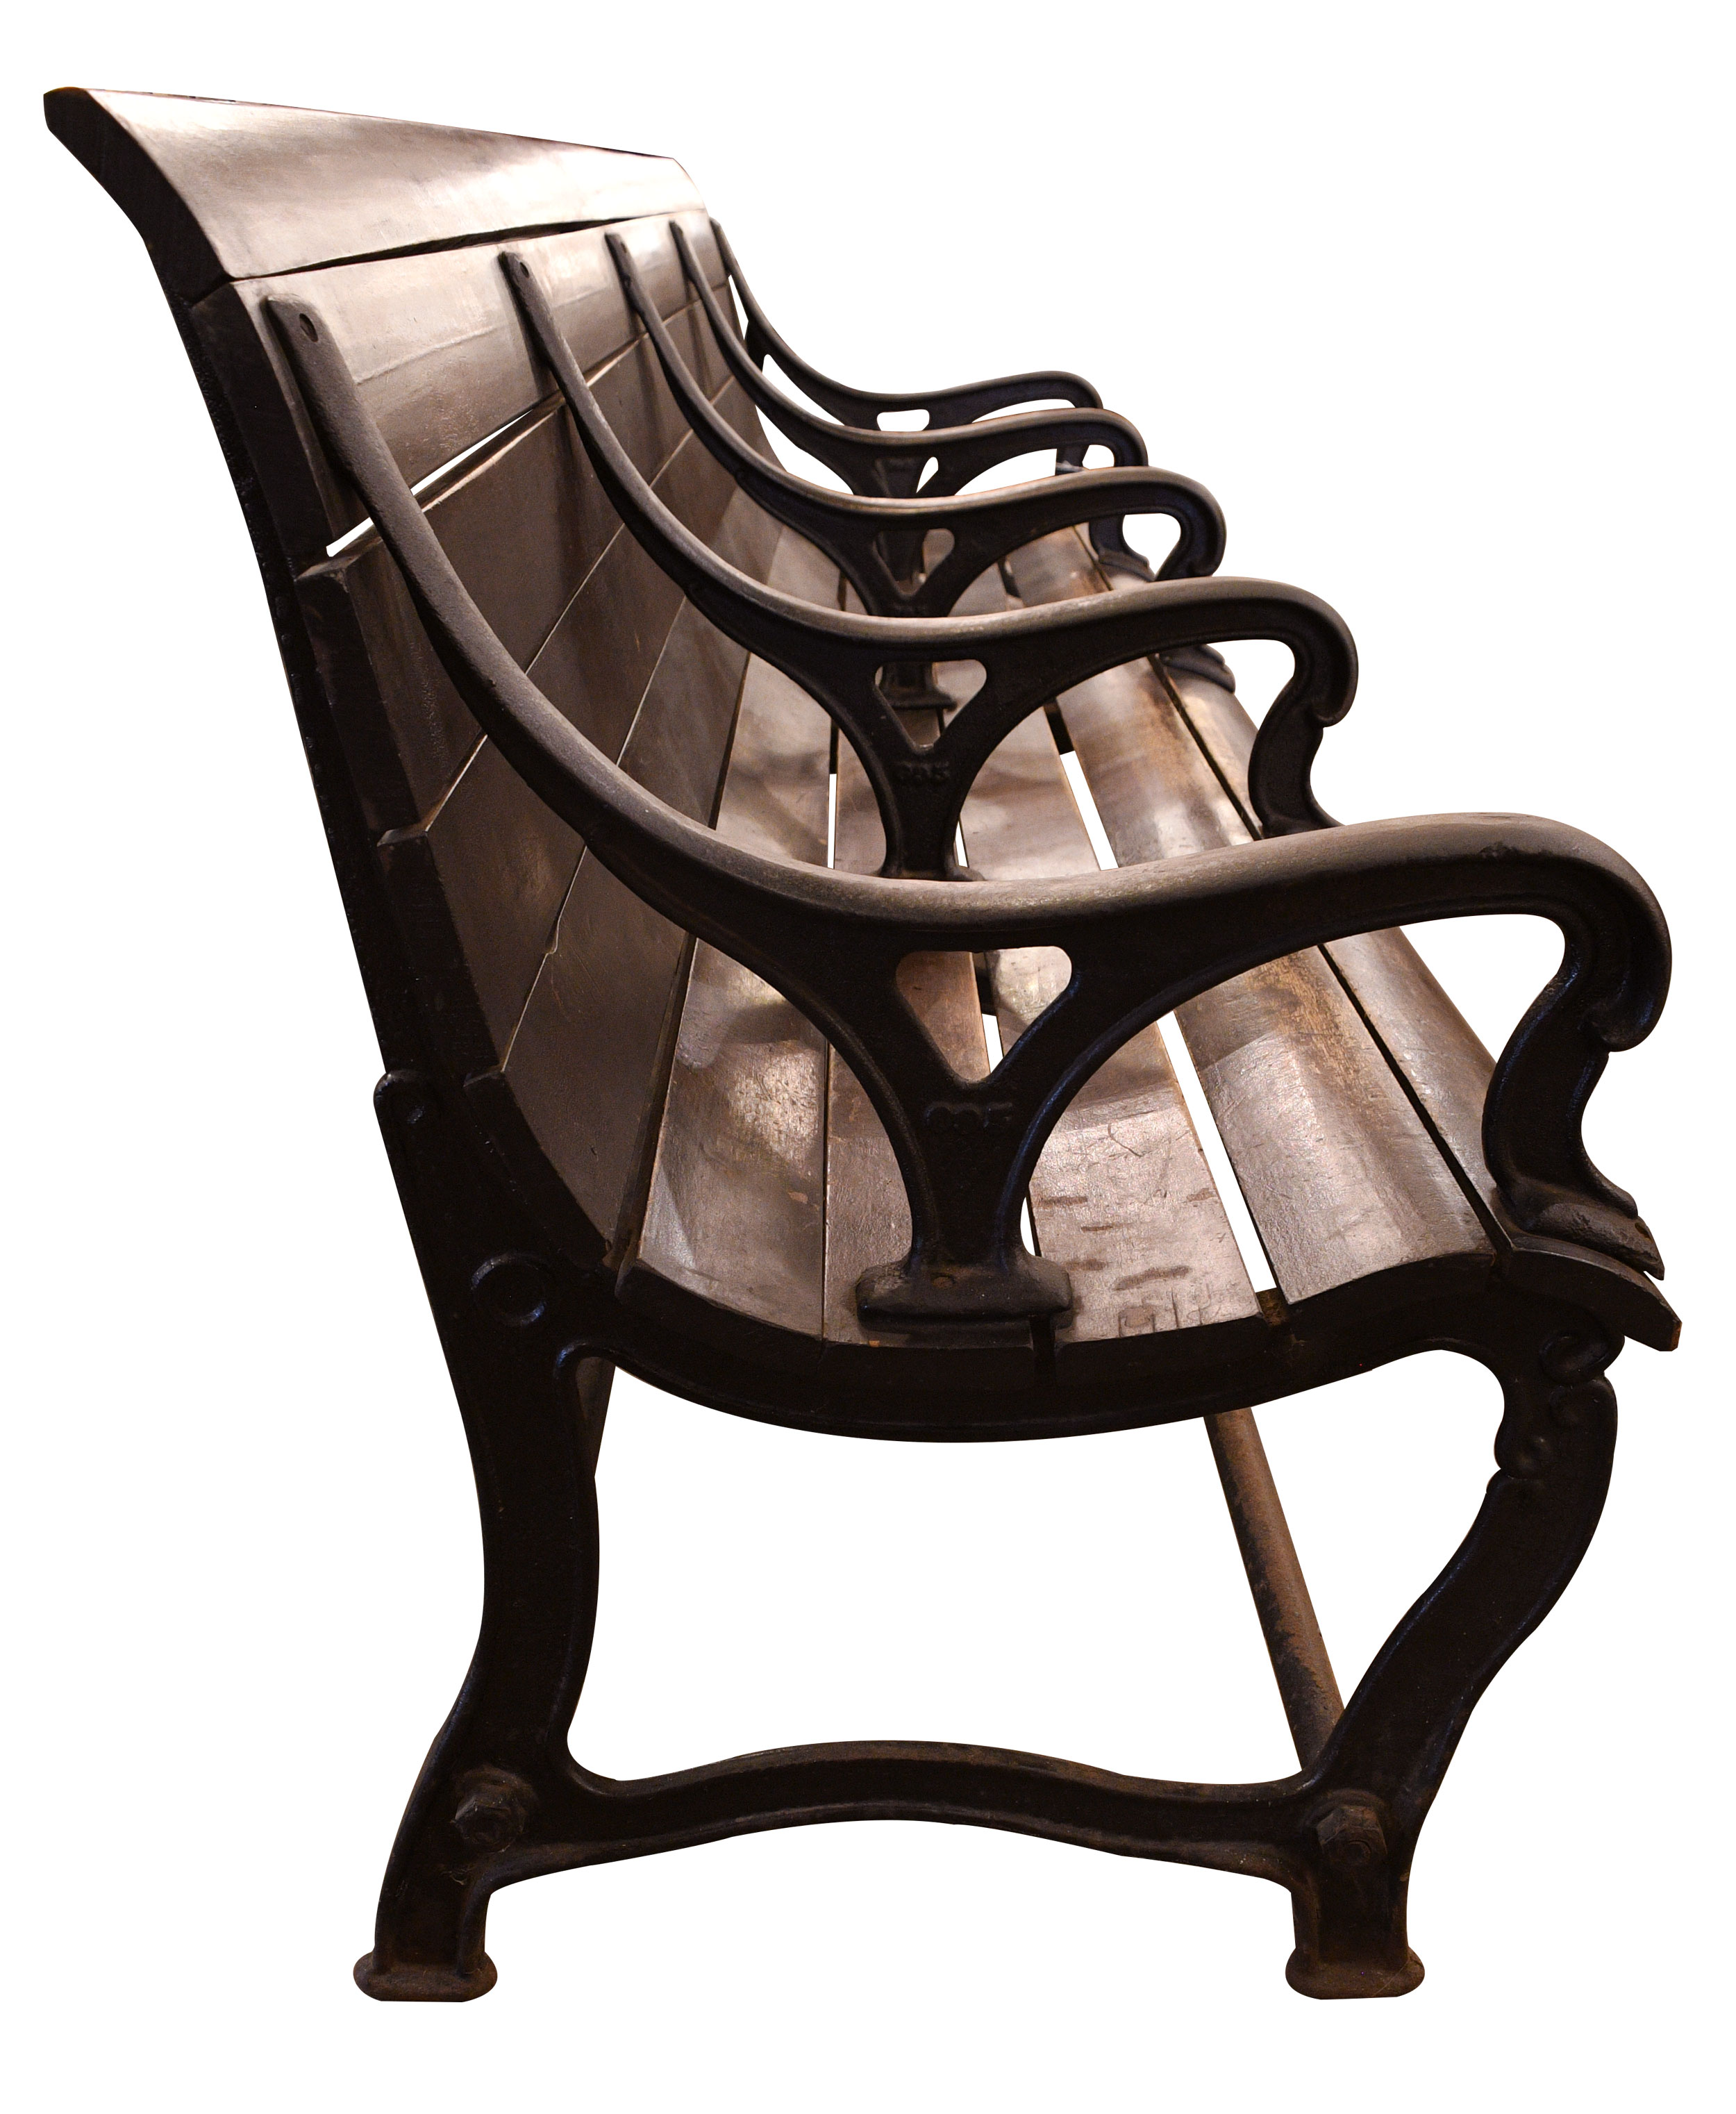 48005-divided-wood-and-iron-bench-profile.jpg